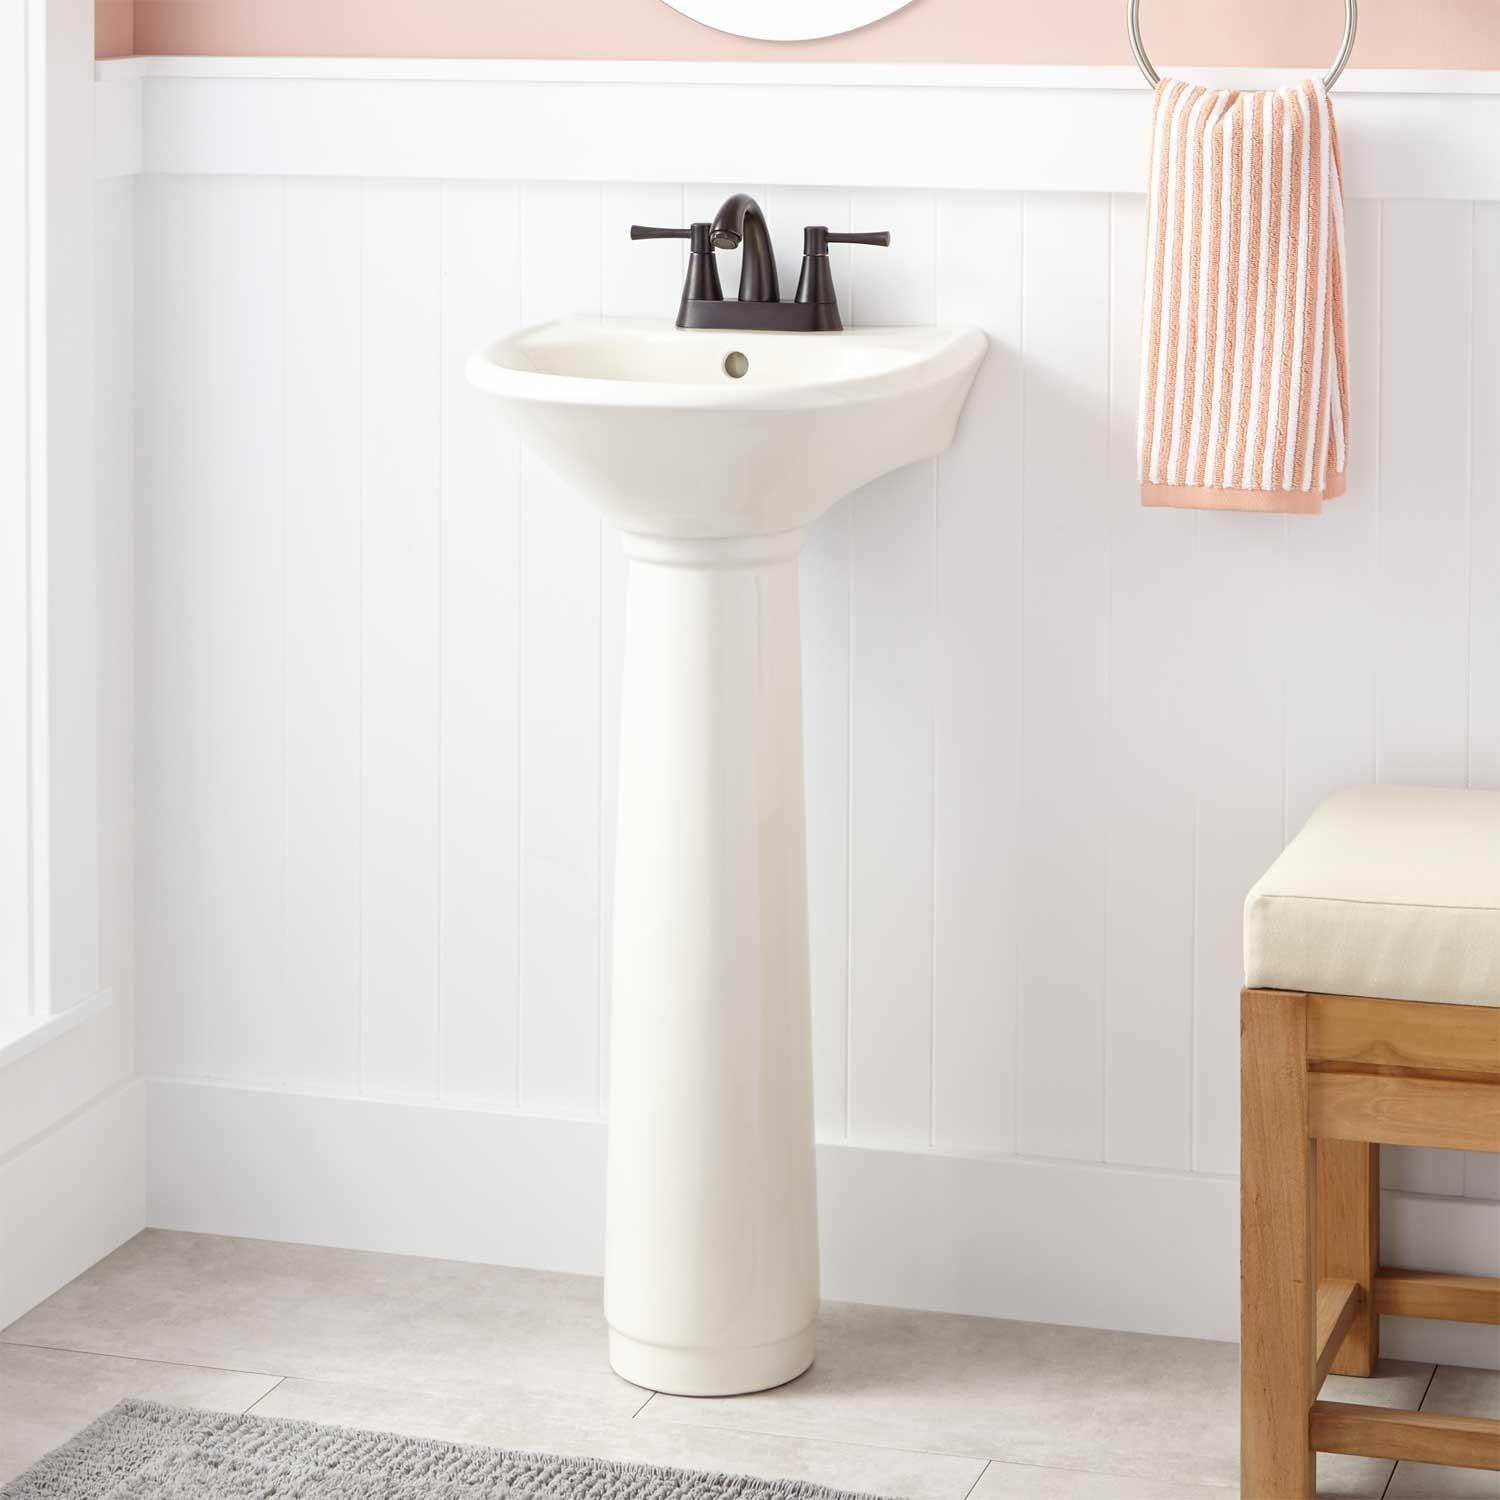 Farnham Porcelain Mini Pedestal Sink Sinks